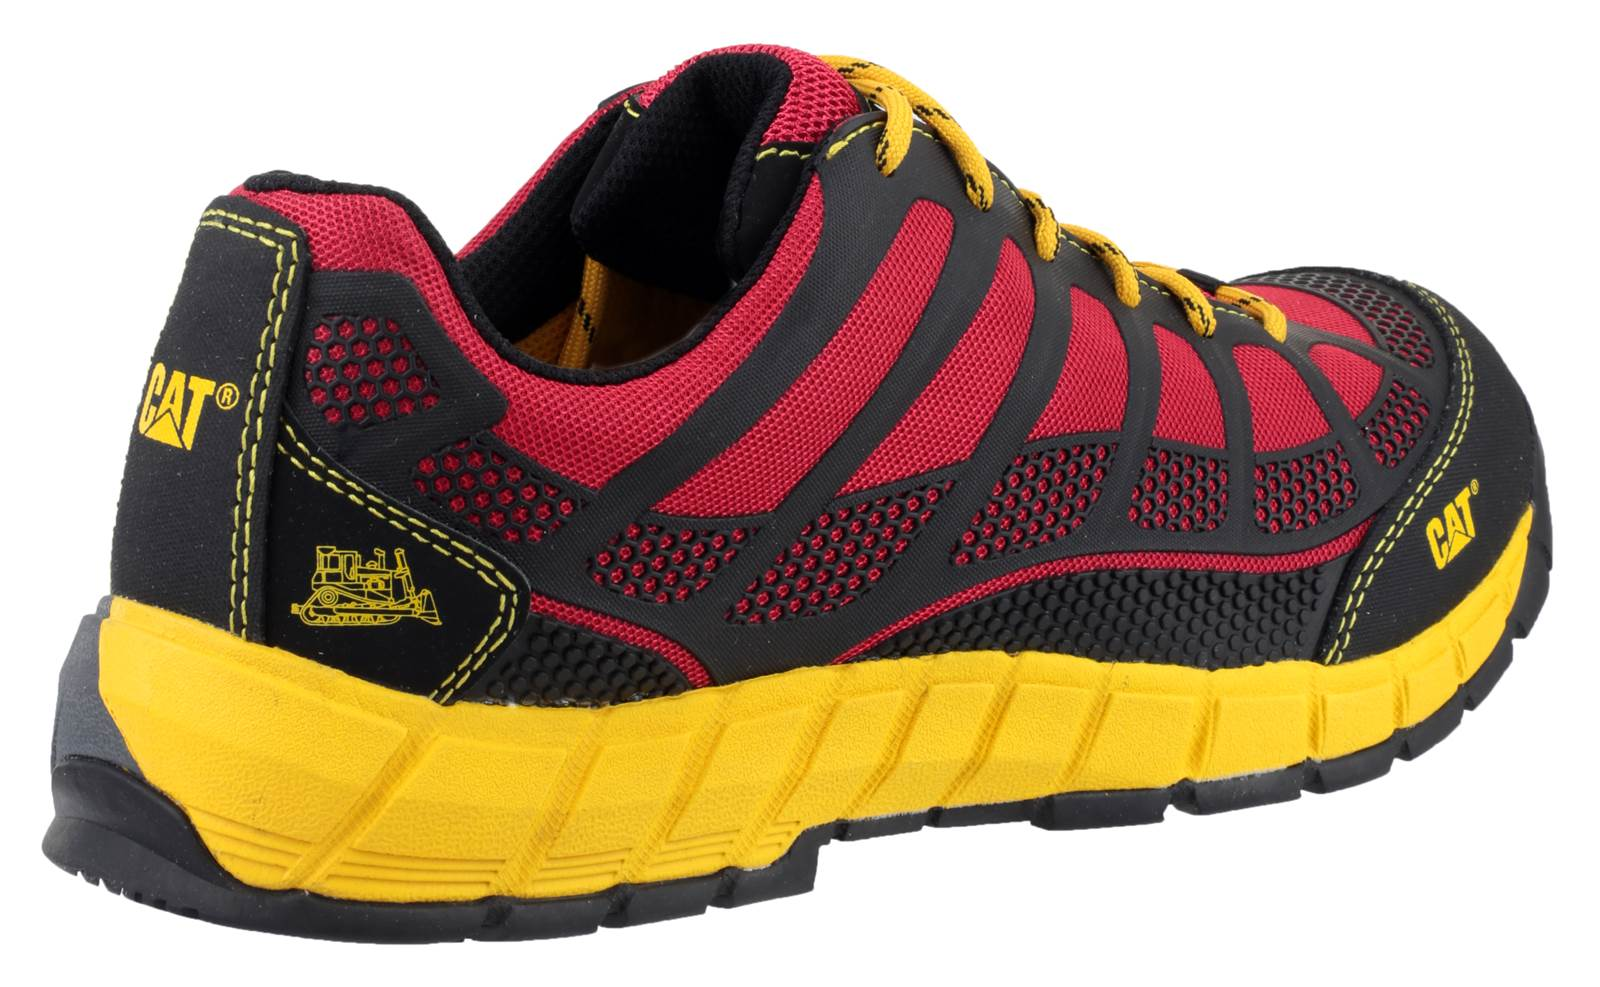 Caterpillar Cat Streamline S1p Safety Nubuck Trainer